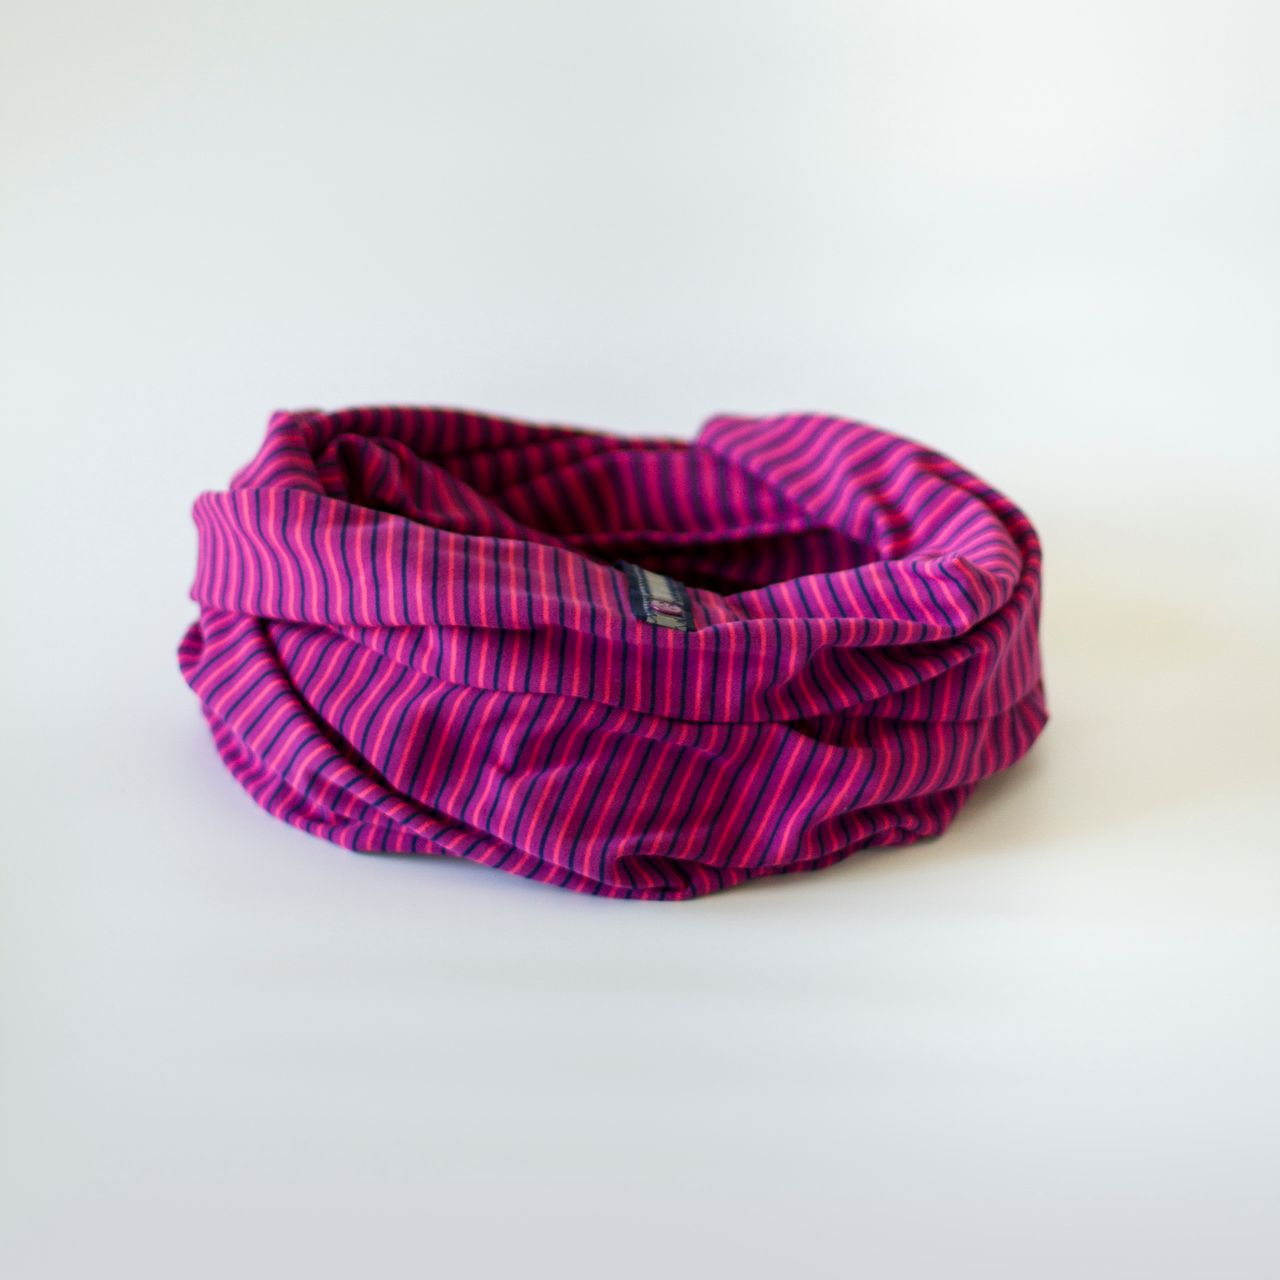 Lululemon Vinyasa Scarf *Rulu - Rizzy Stripe Regal Plum Hero Blue / Hero Blue